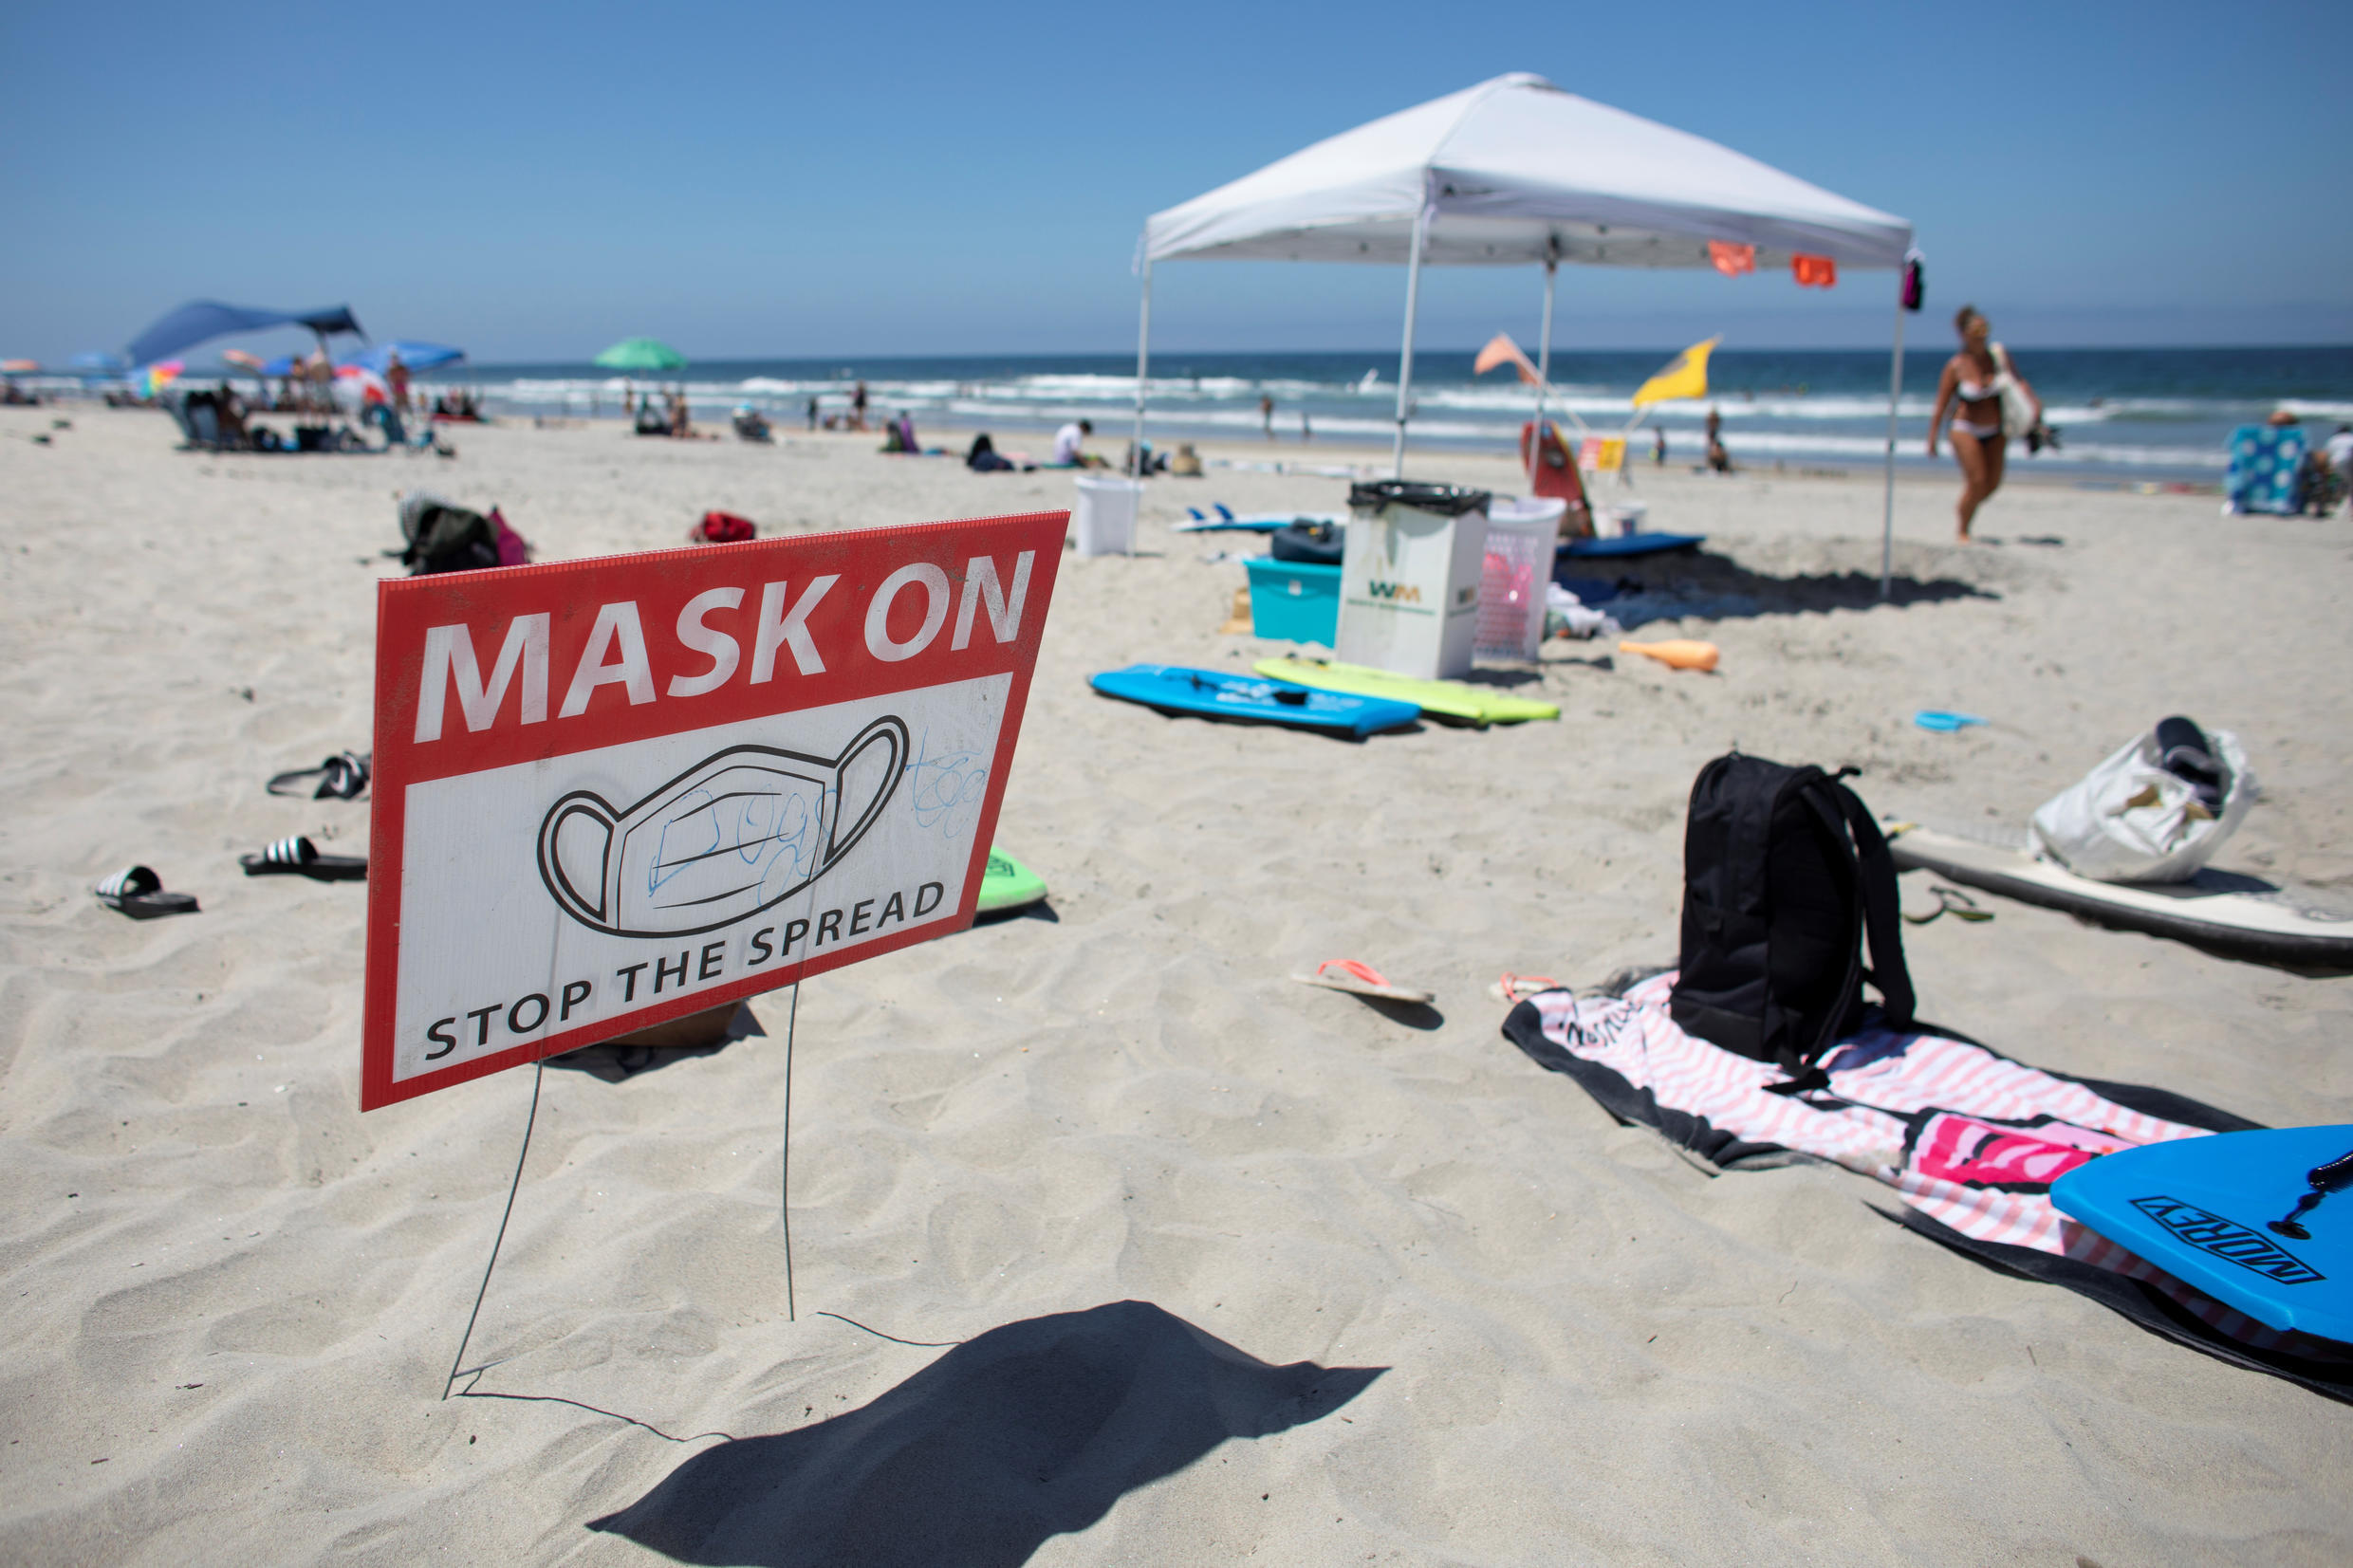 A sign requiring the use of masks is seen at the beach as California reported its largest number of new coronavirus infections in a single day, during the outbreak of the coronavirus disease (COVID-19) in Del Mar, California, U.S., July 15, 2020.